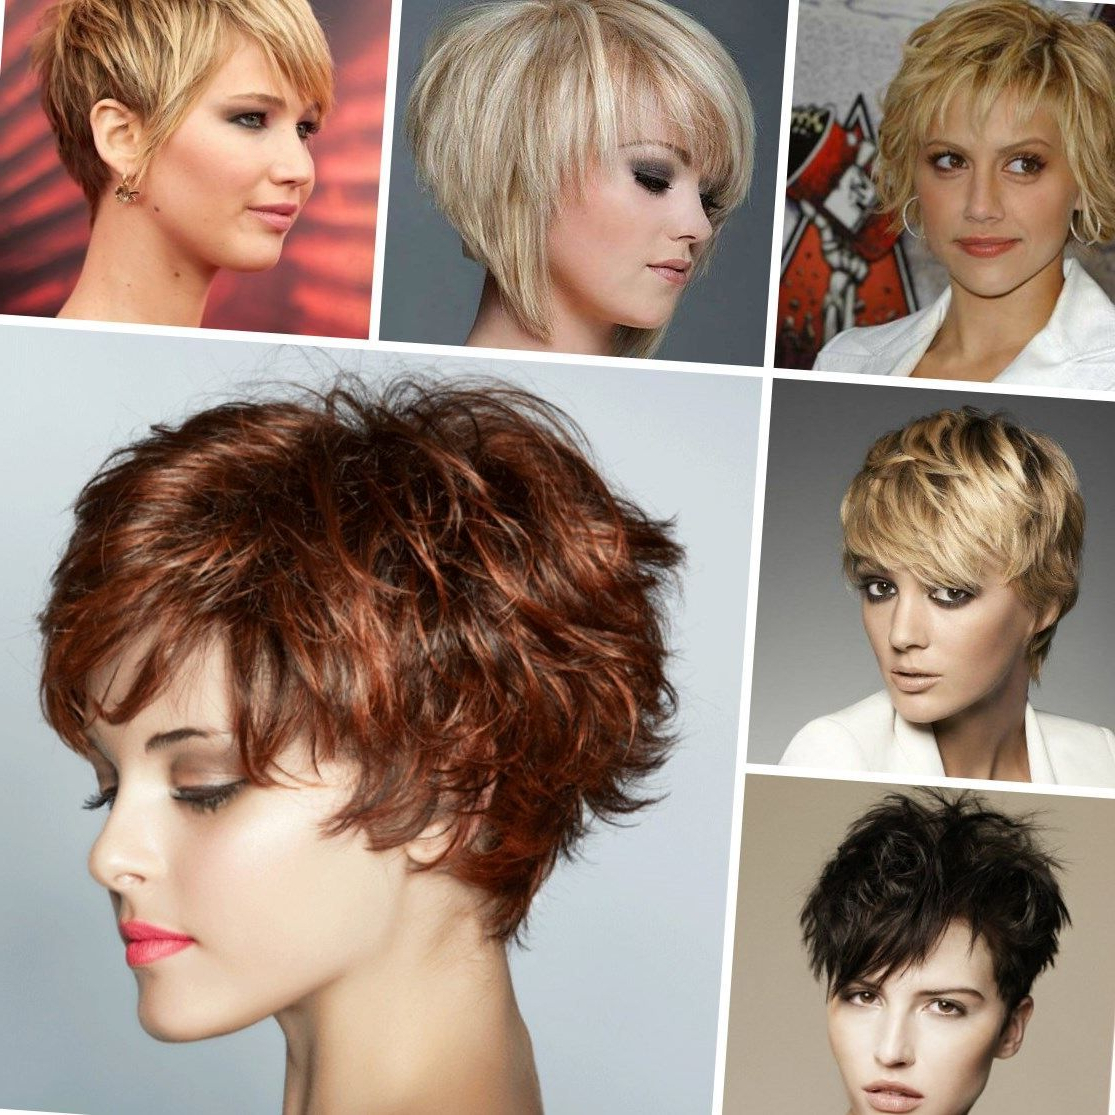 20 Short Sassy Haircuts Short Hairstyles 2017 2018 Most Throughout Bold Pixie Haircuts (View 8 of 20)